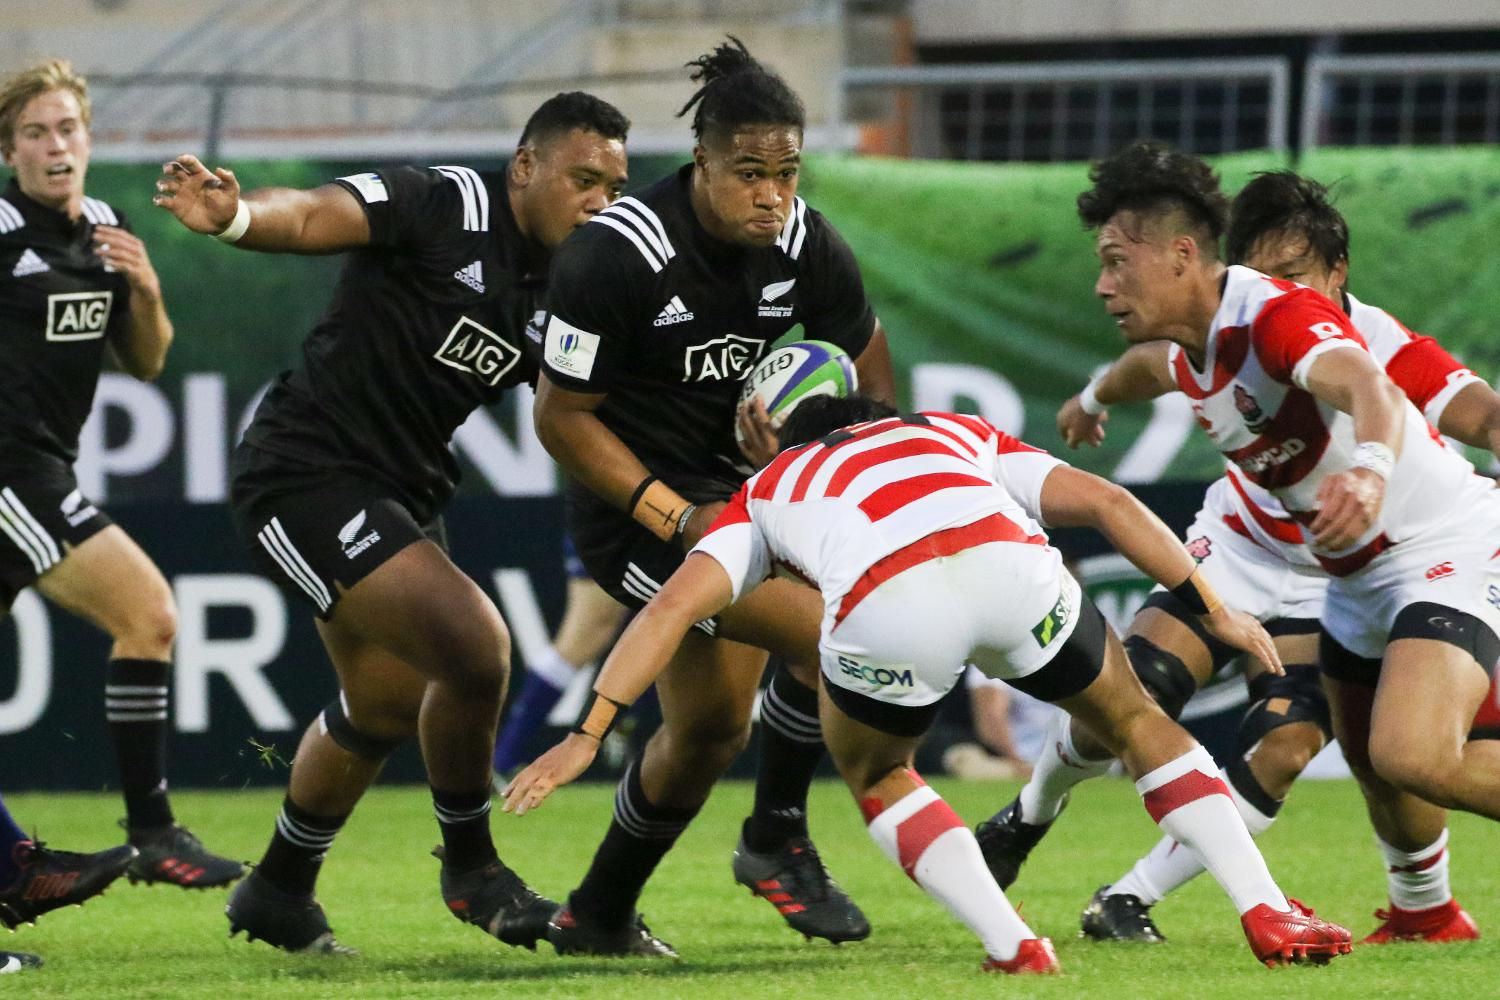 World Rugby U20 Championship 2018: New Zealand v Japan